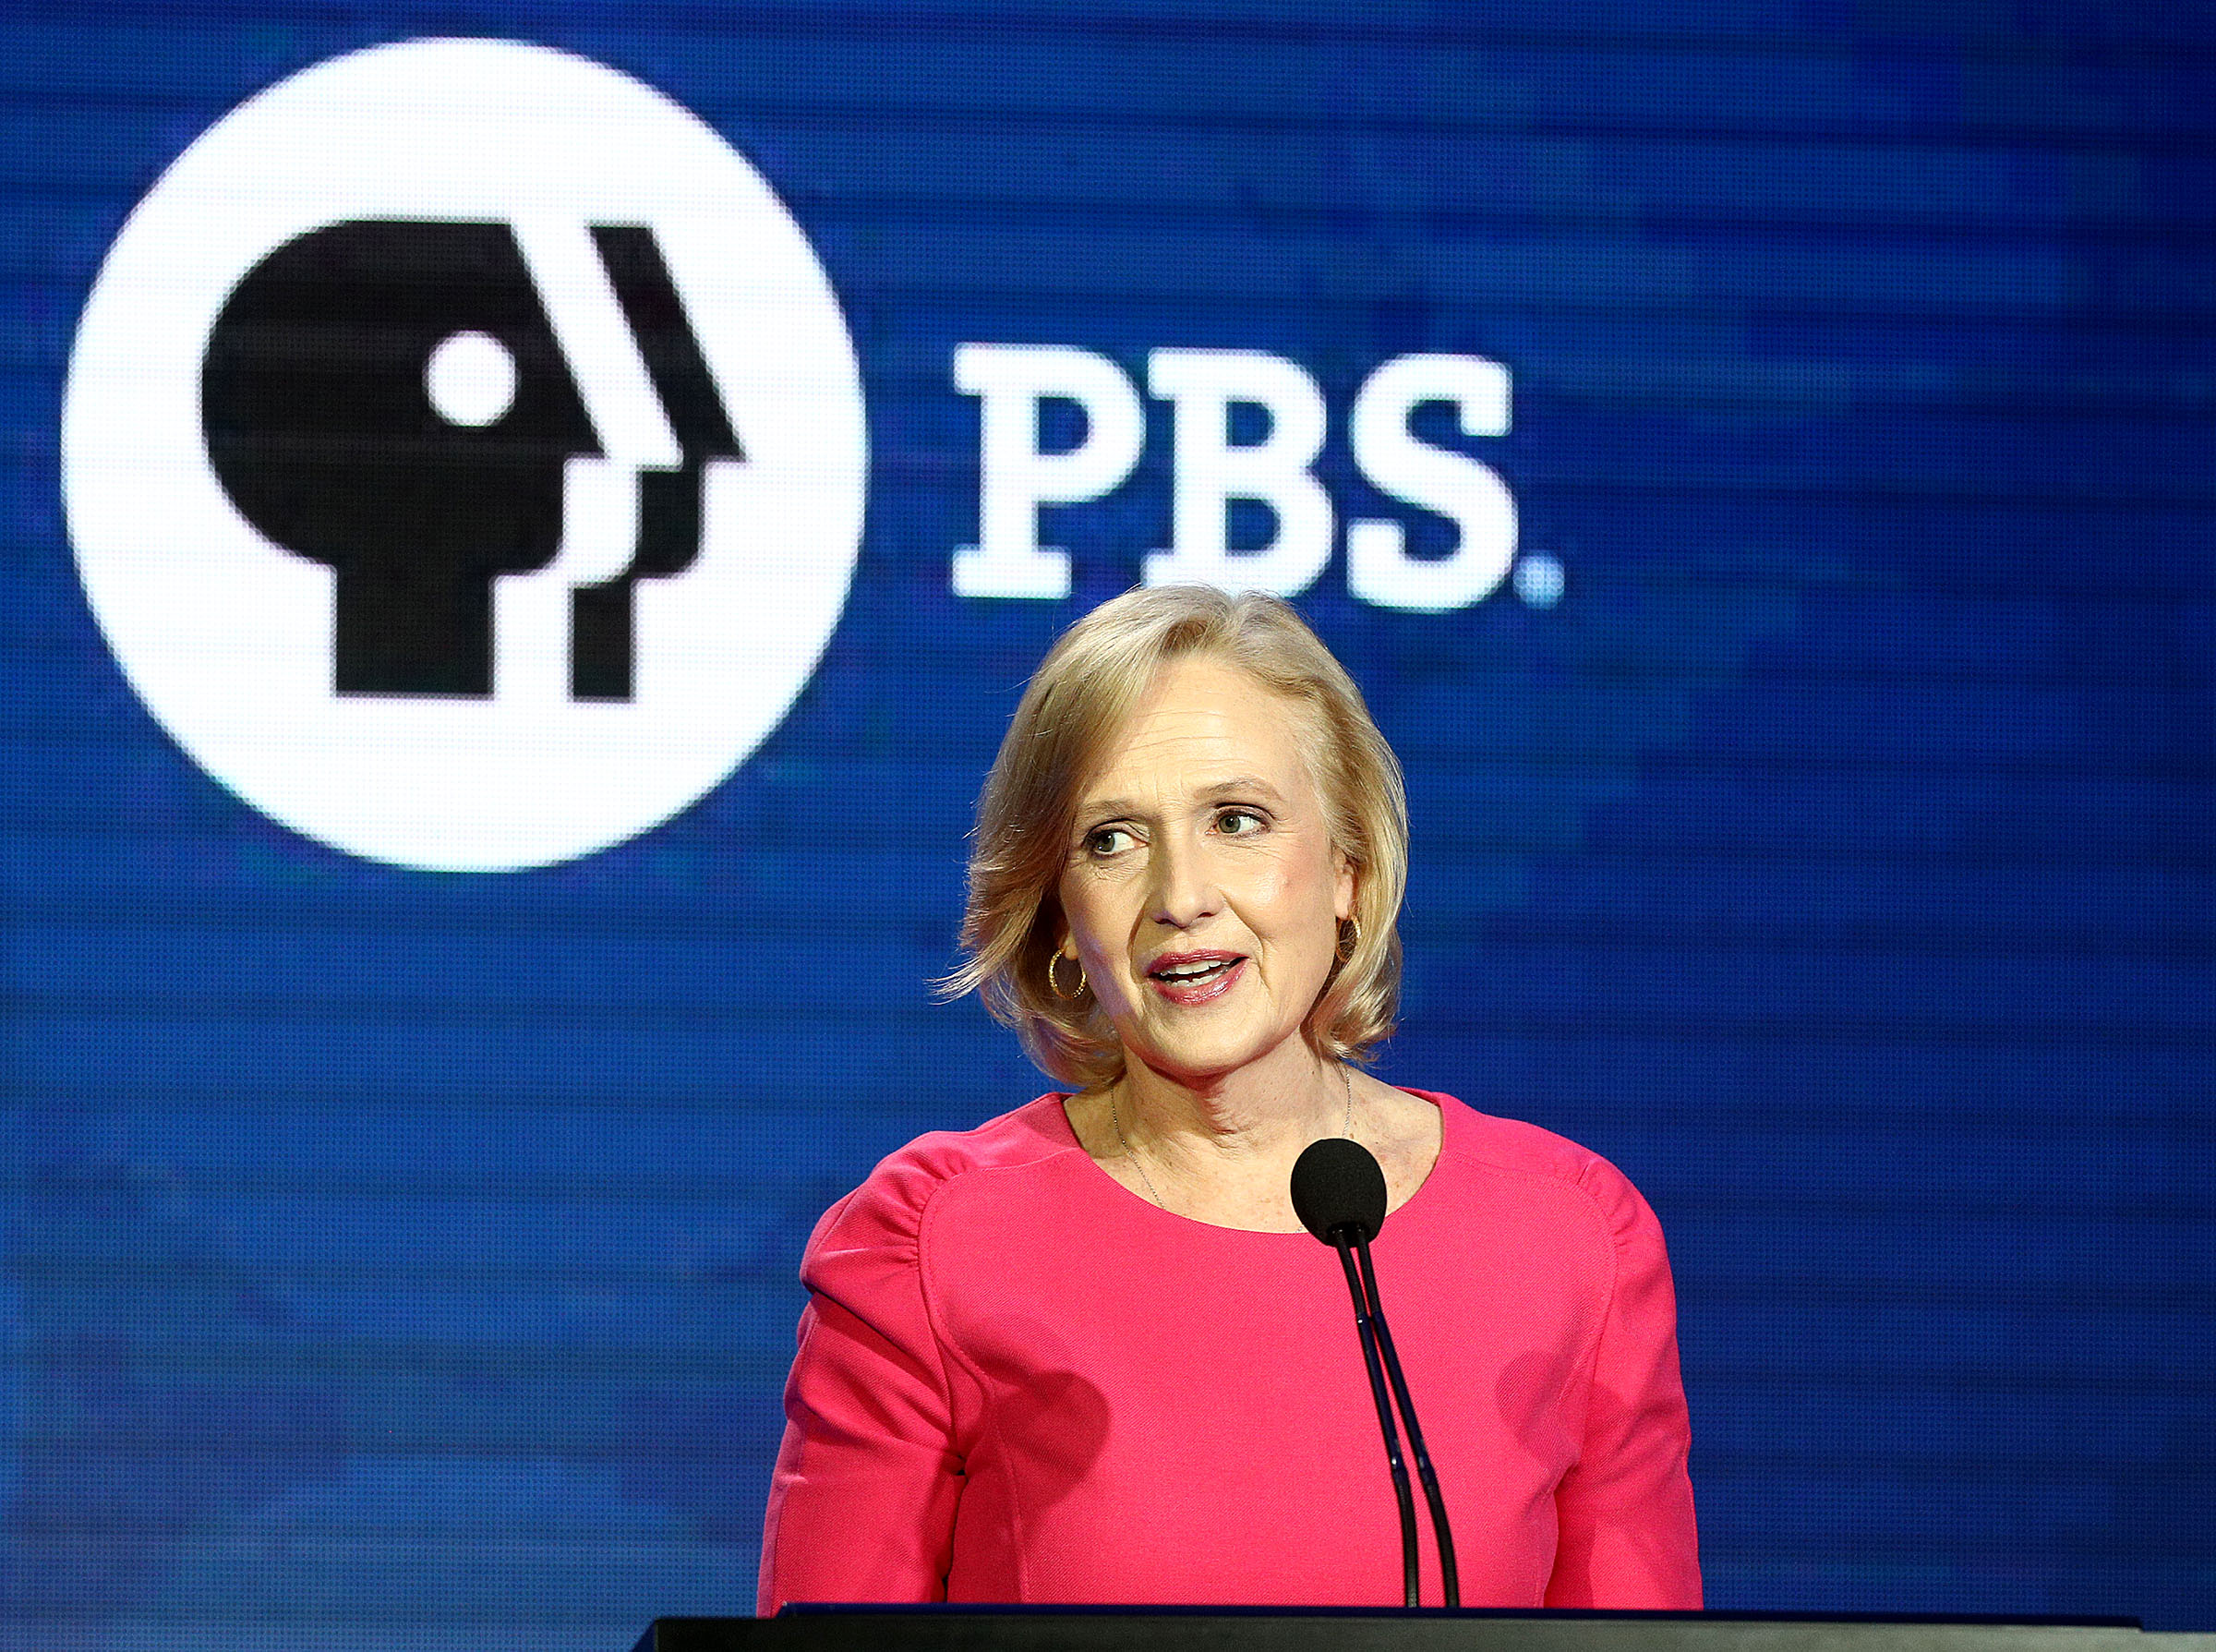 Between corporate media giants and Trump, PBS has big challenges